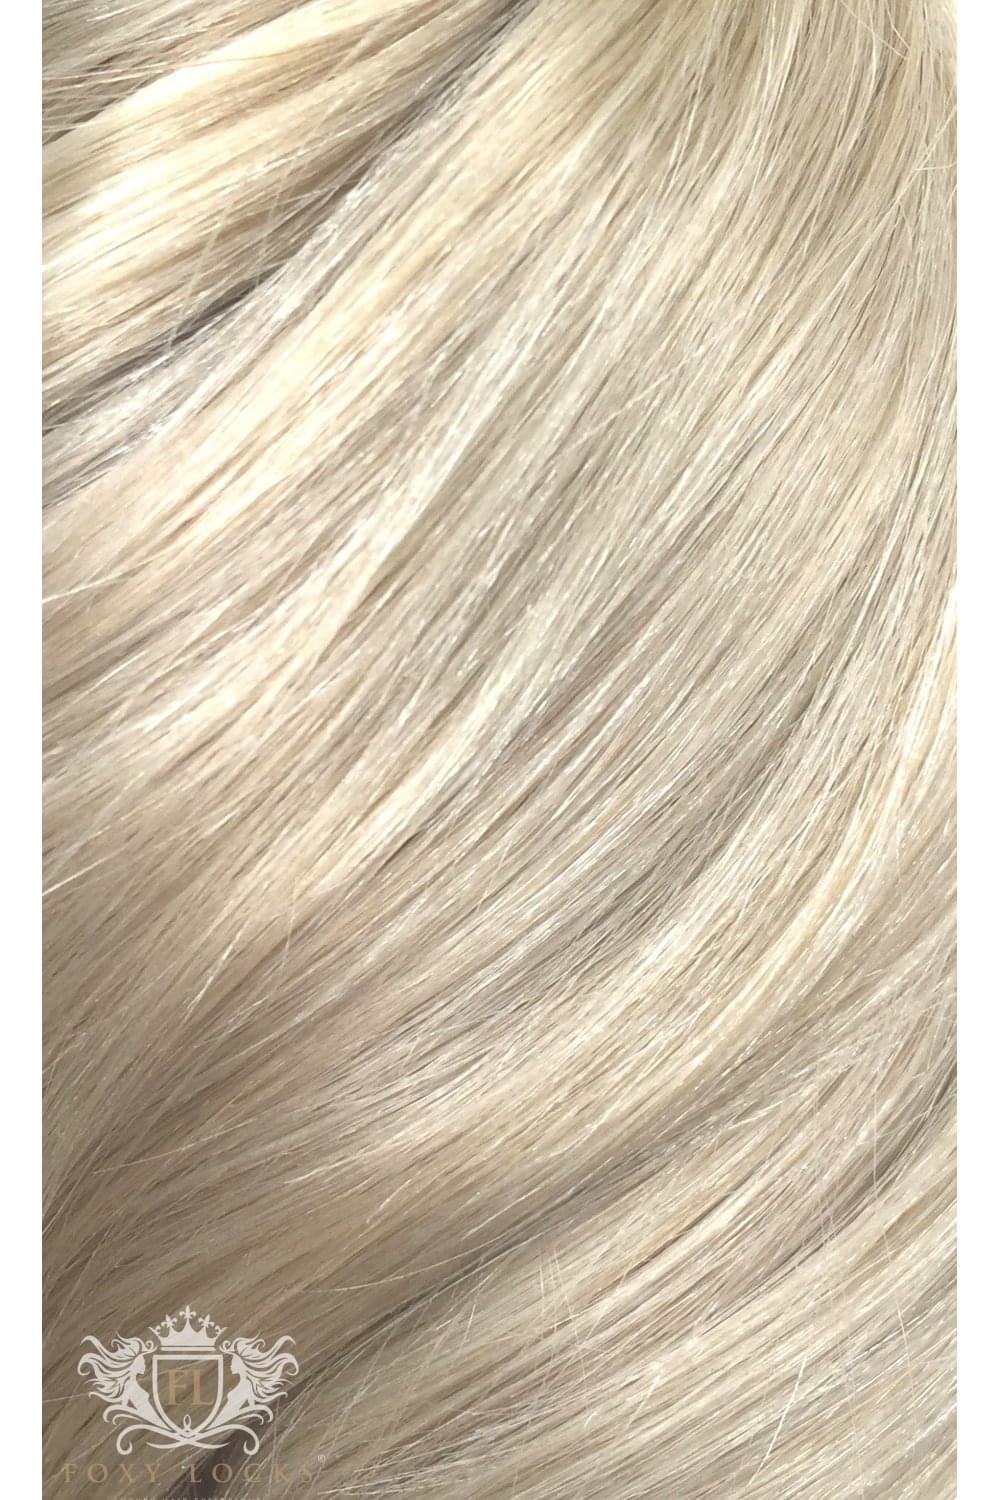 Platinum Superior Seamless 22 Clip In Human Hair Extensions 230g